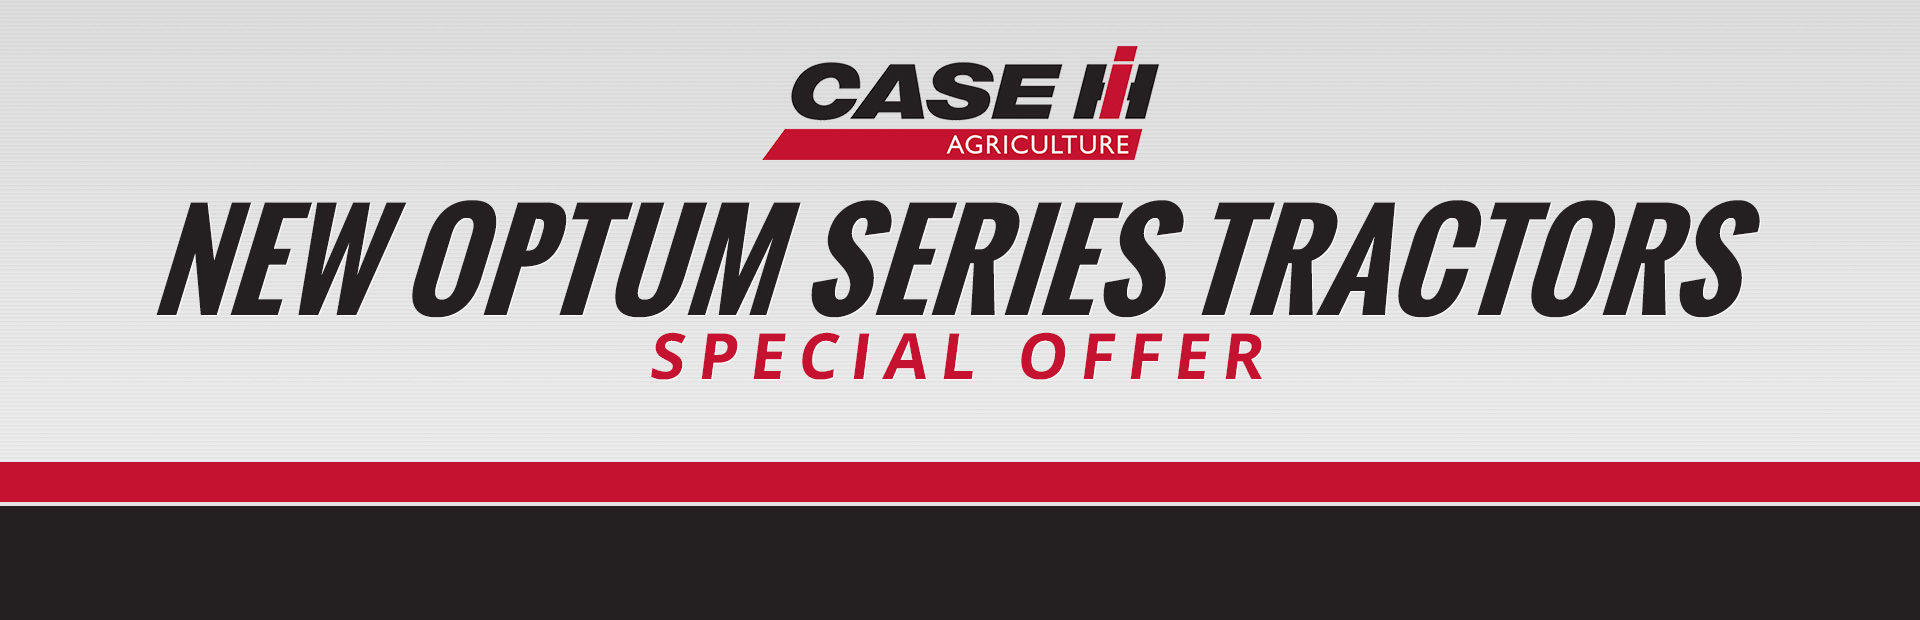 Case IH: New Optum Series Tractors Special Offer